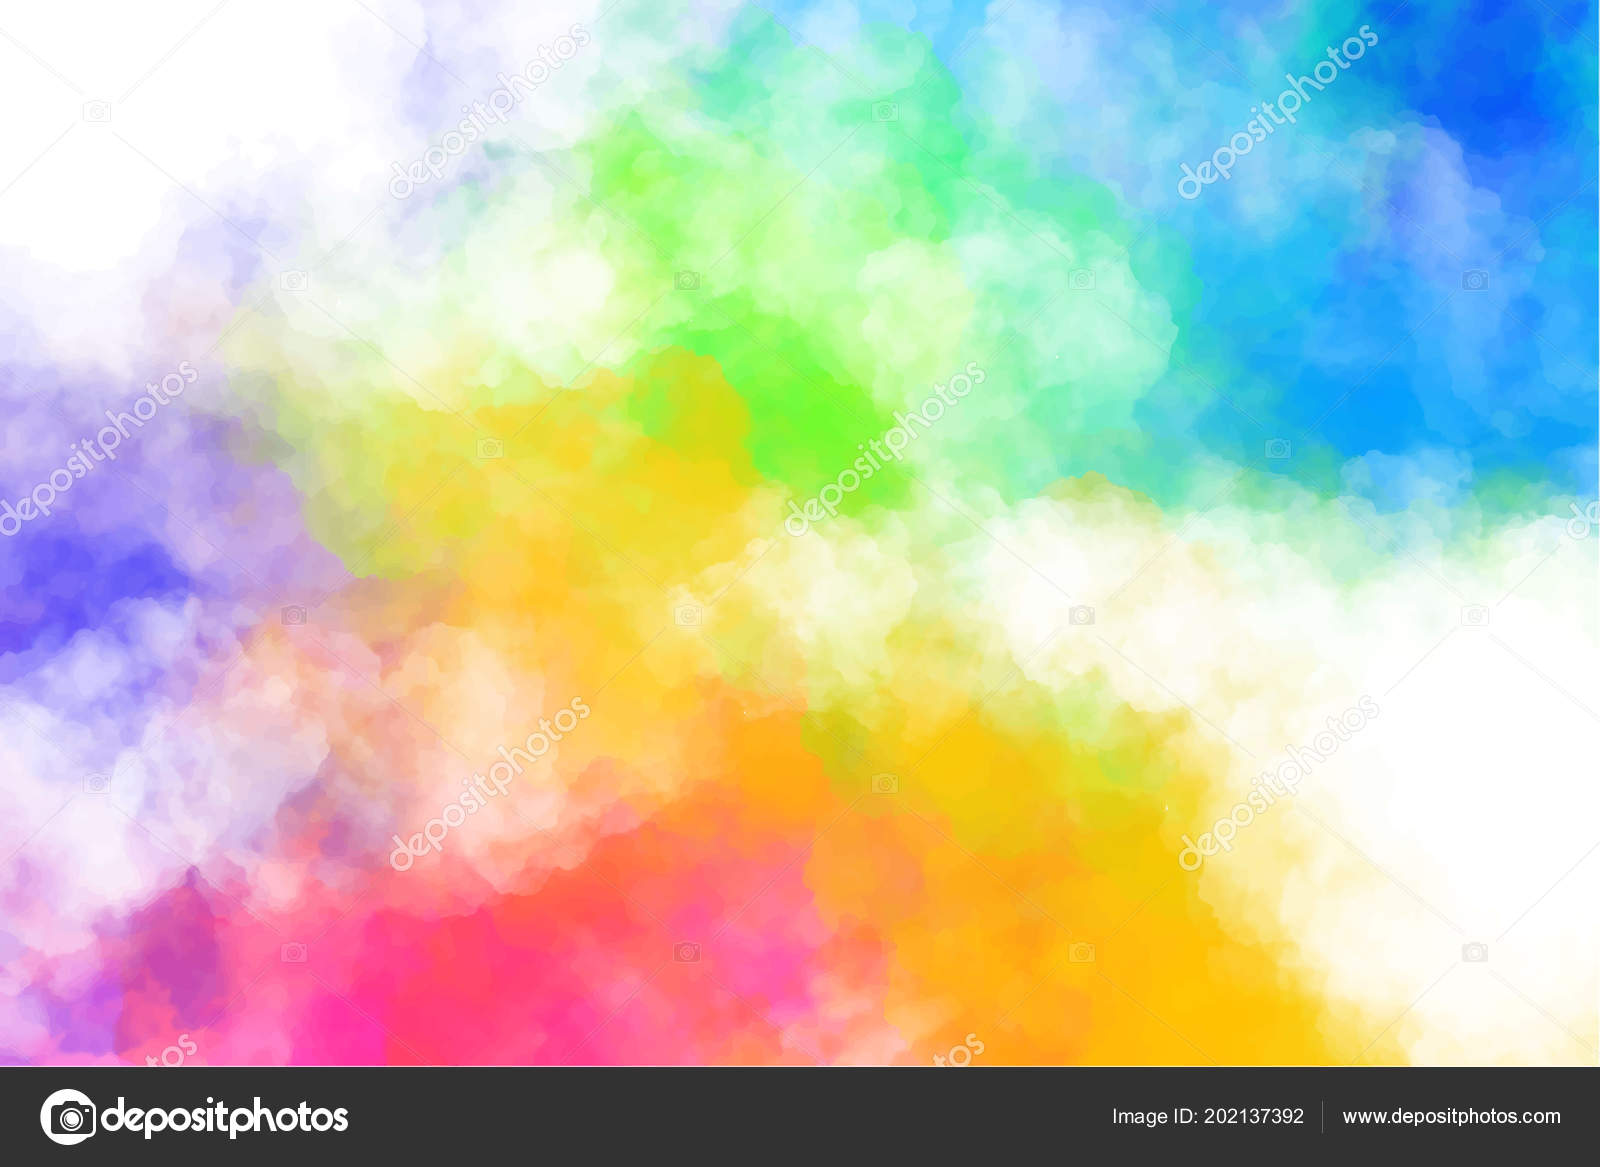 Happy Holi Full Hd Wallpaper Vector Abstract Colorful Background With Colorful Clouds